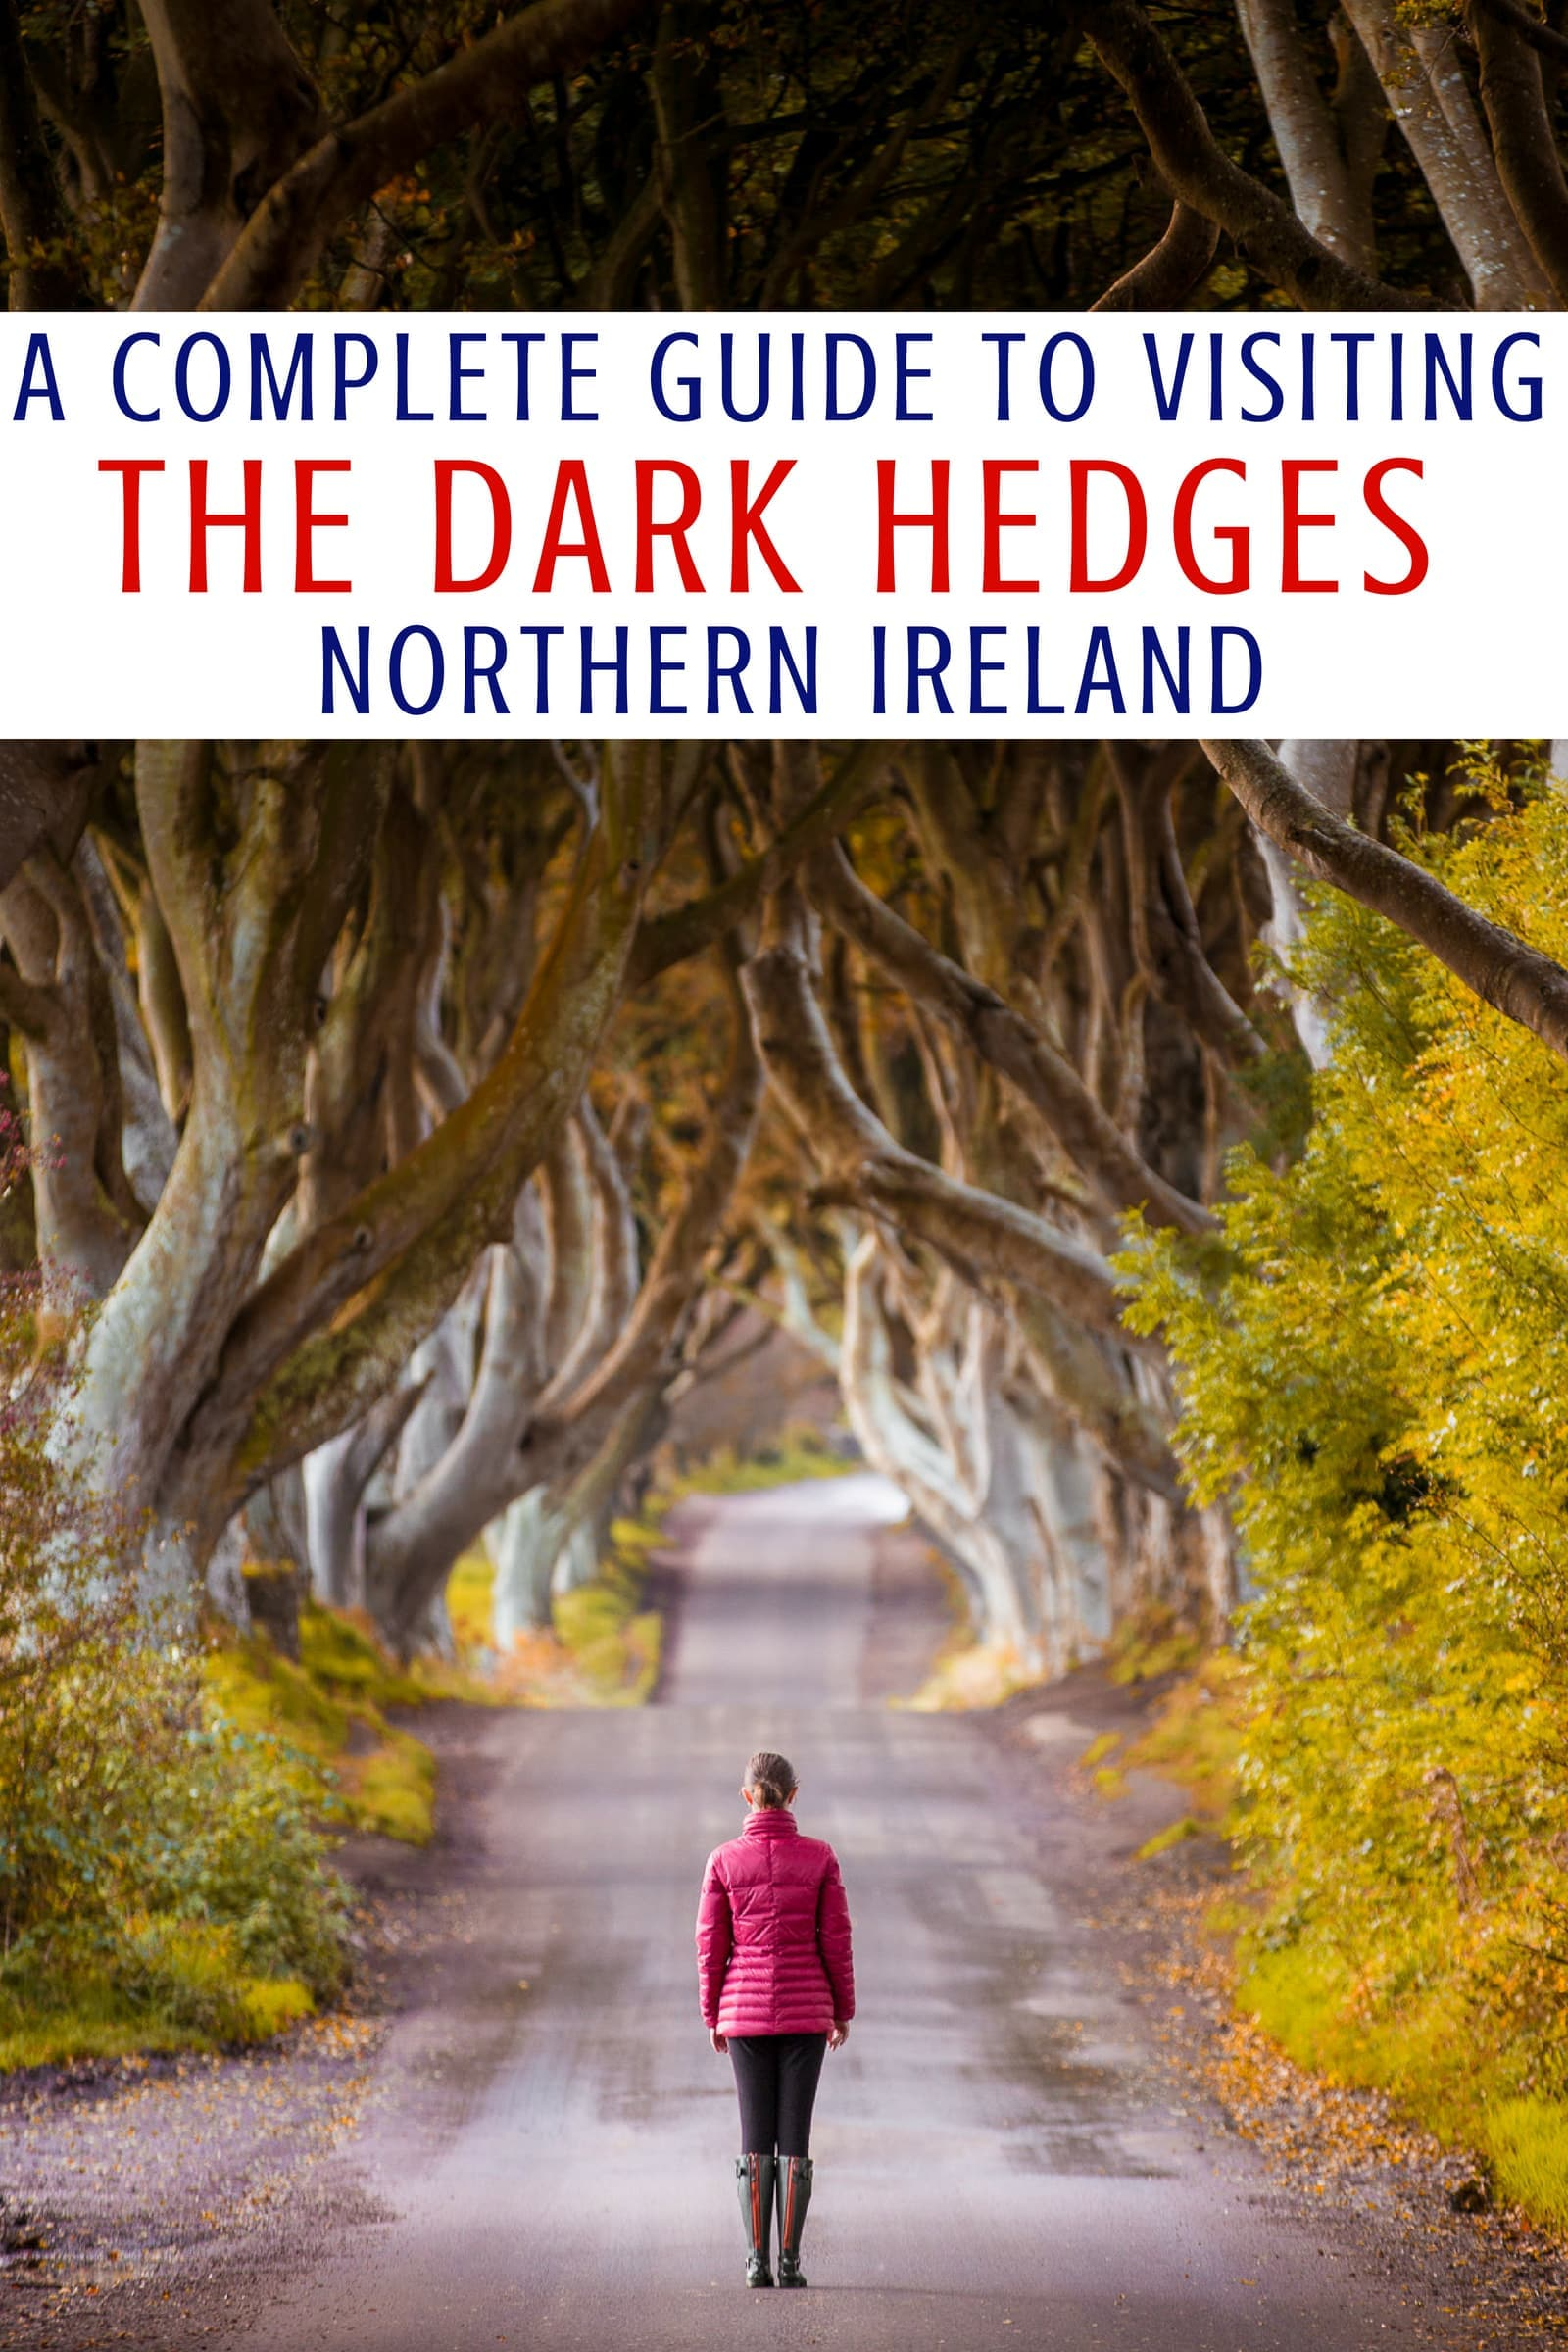 The Dark Hedges is one of the most popular attractions in Northern Ireland. It is a beautiful row of trees that has been made famous by their appearance in Game of Thrones. In this Dark Hedges guide, we're going to tell you everything you need to know to visit the Dark Hedges including how to get there, where to park, tips for photographing the Dark Hedges, how to avoid the crowds, and where you can eat and stay nearby. #DarkHedges #NorthernIreland #Ireland #GoT #GameofThrones #travel